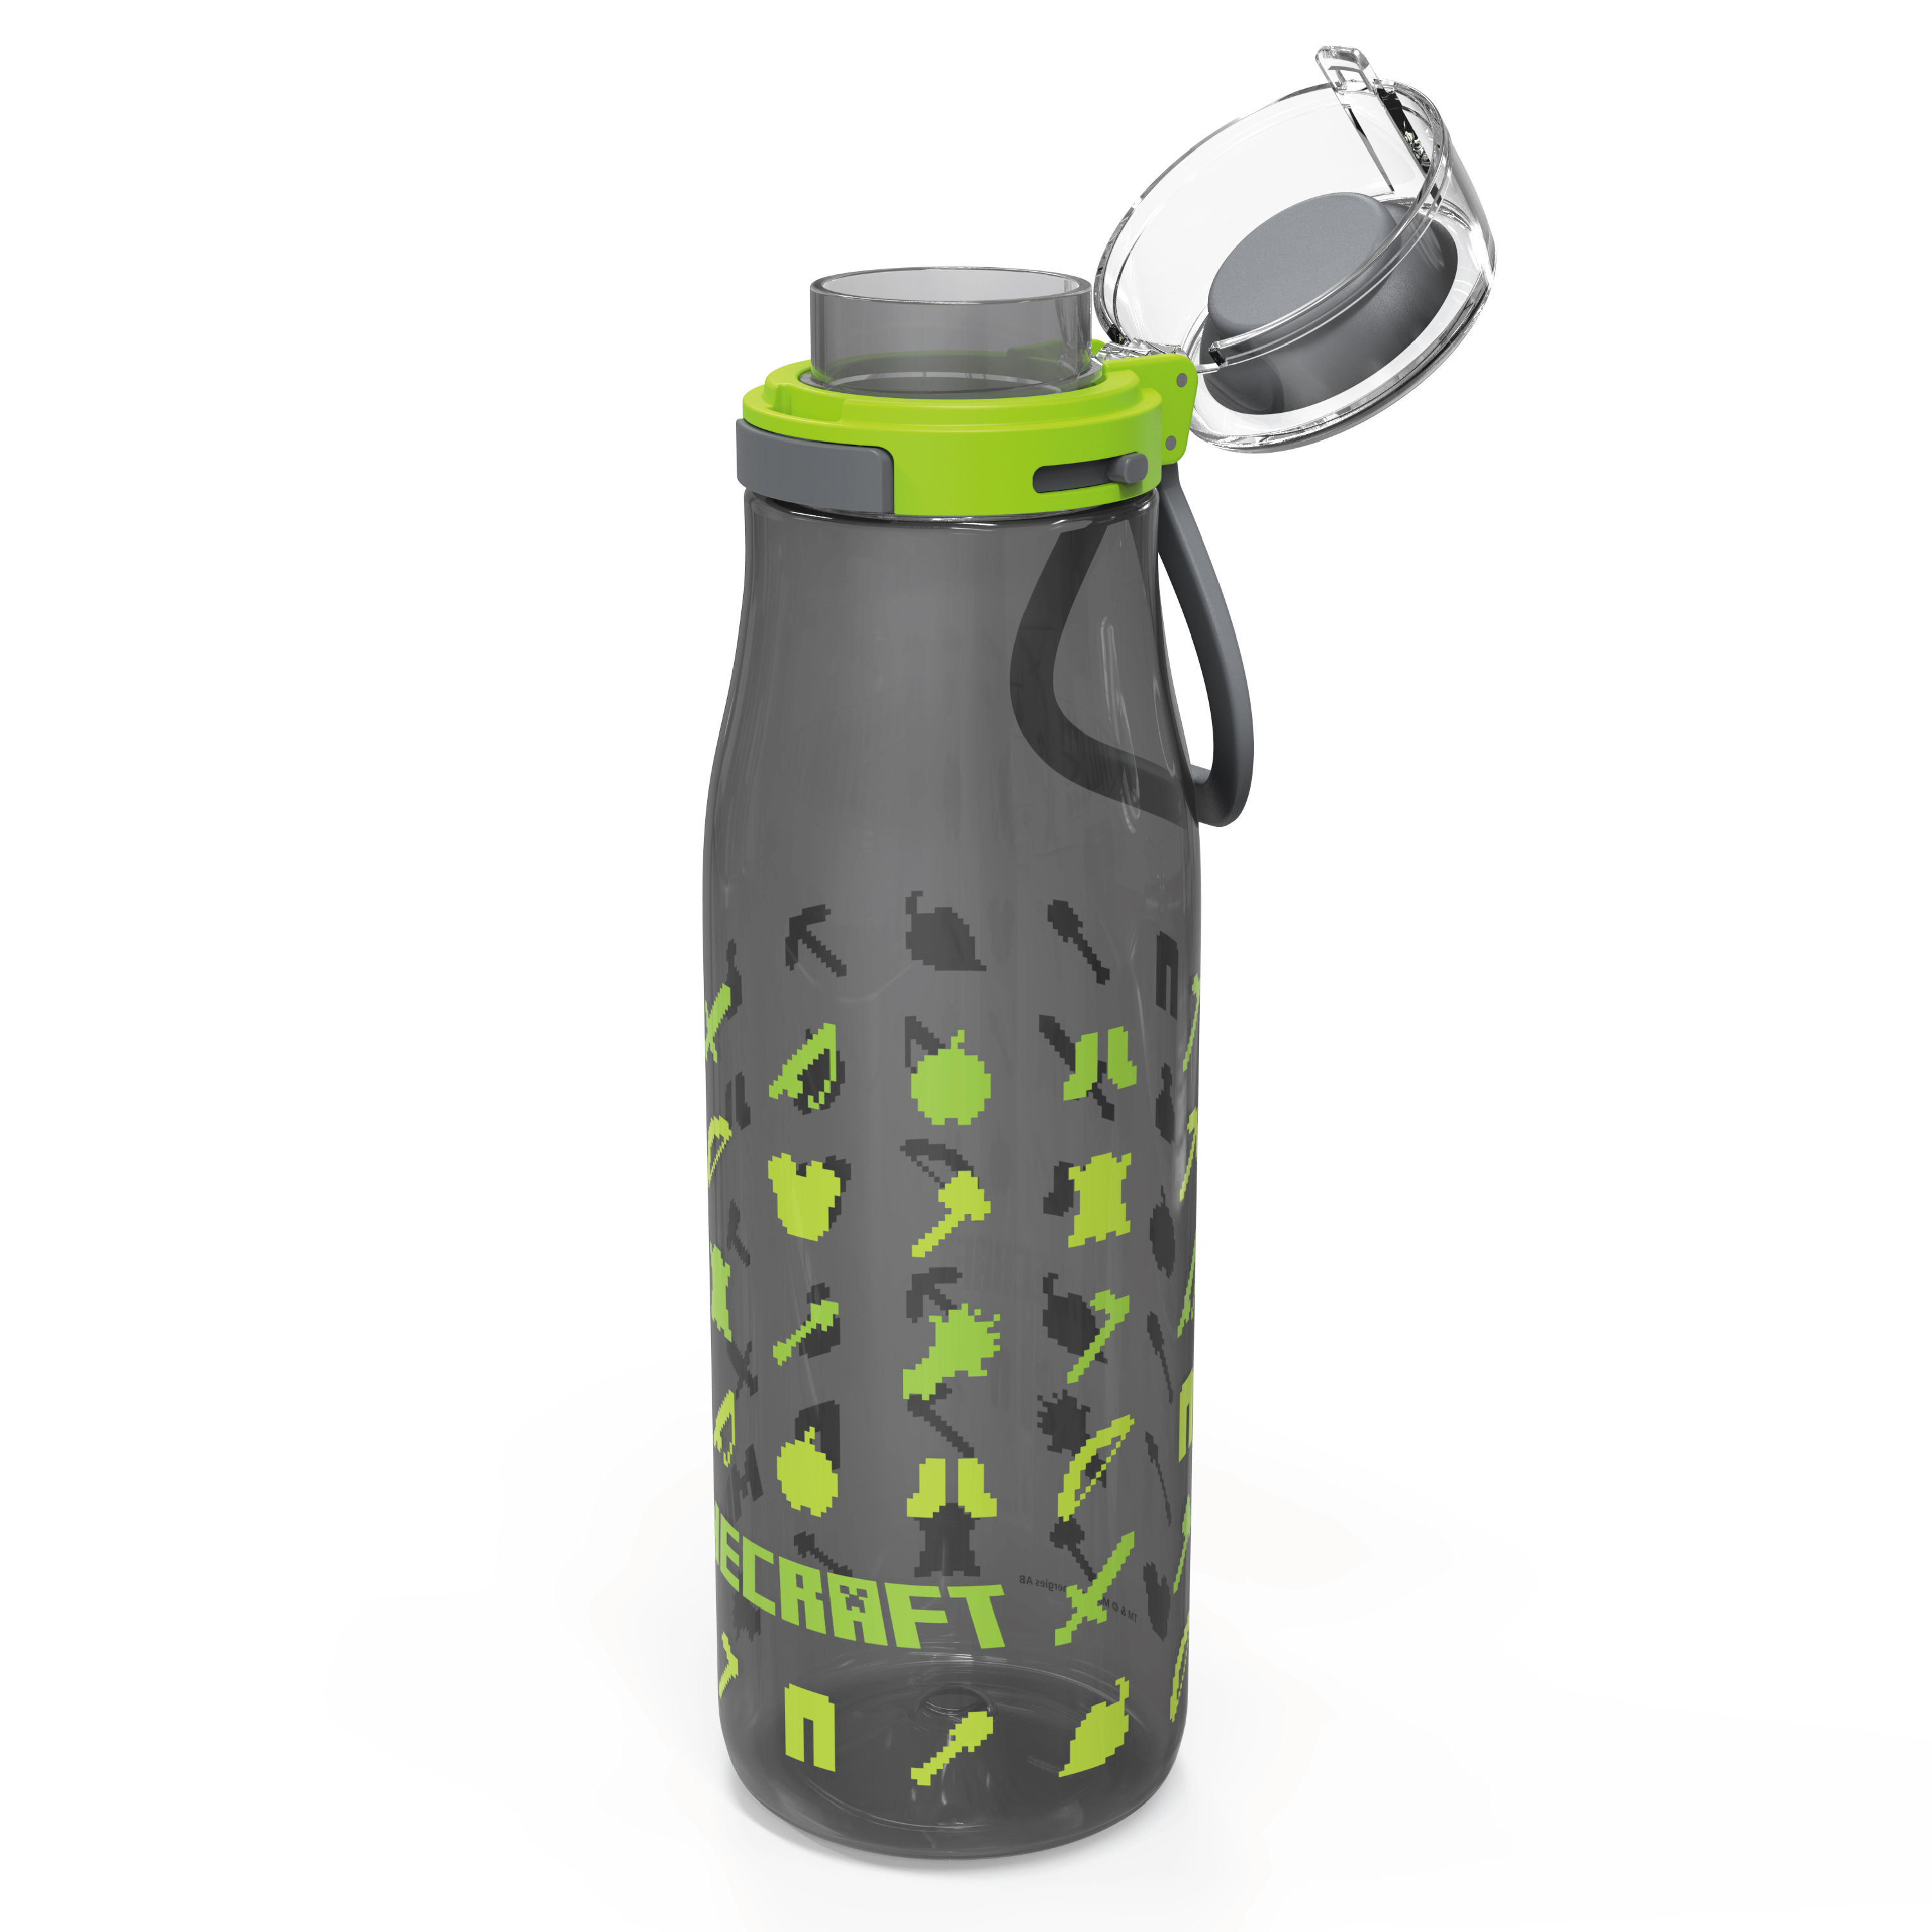 Minecraft 25 ounce Water Bottle and Straws, Weapons and Tools, 3-piece set slideshow image 3